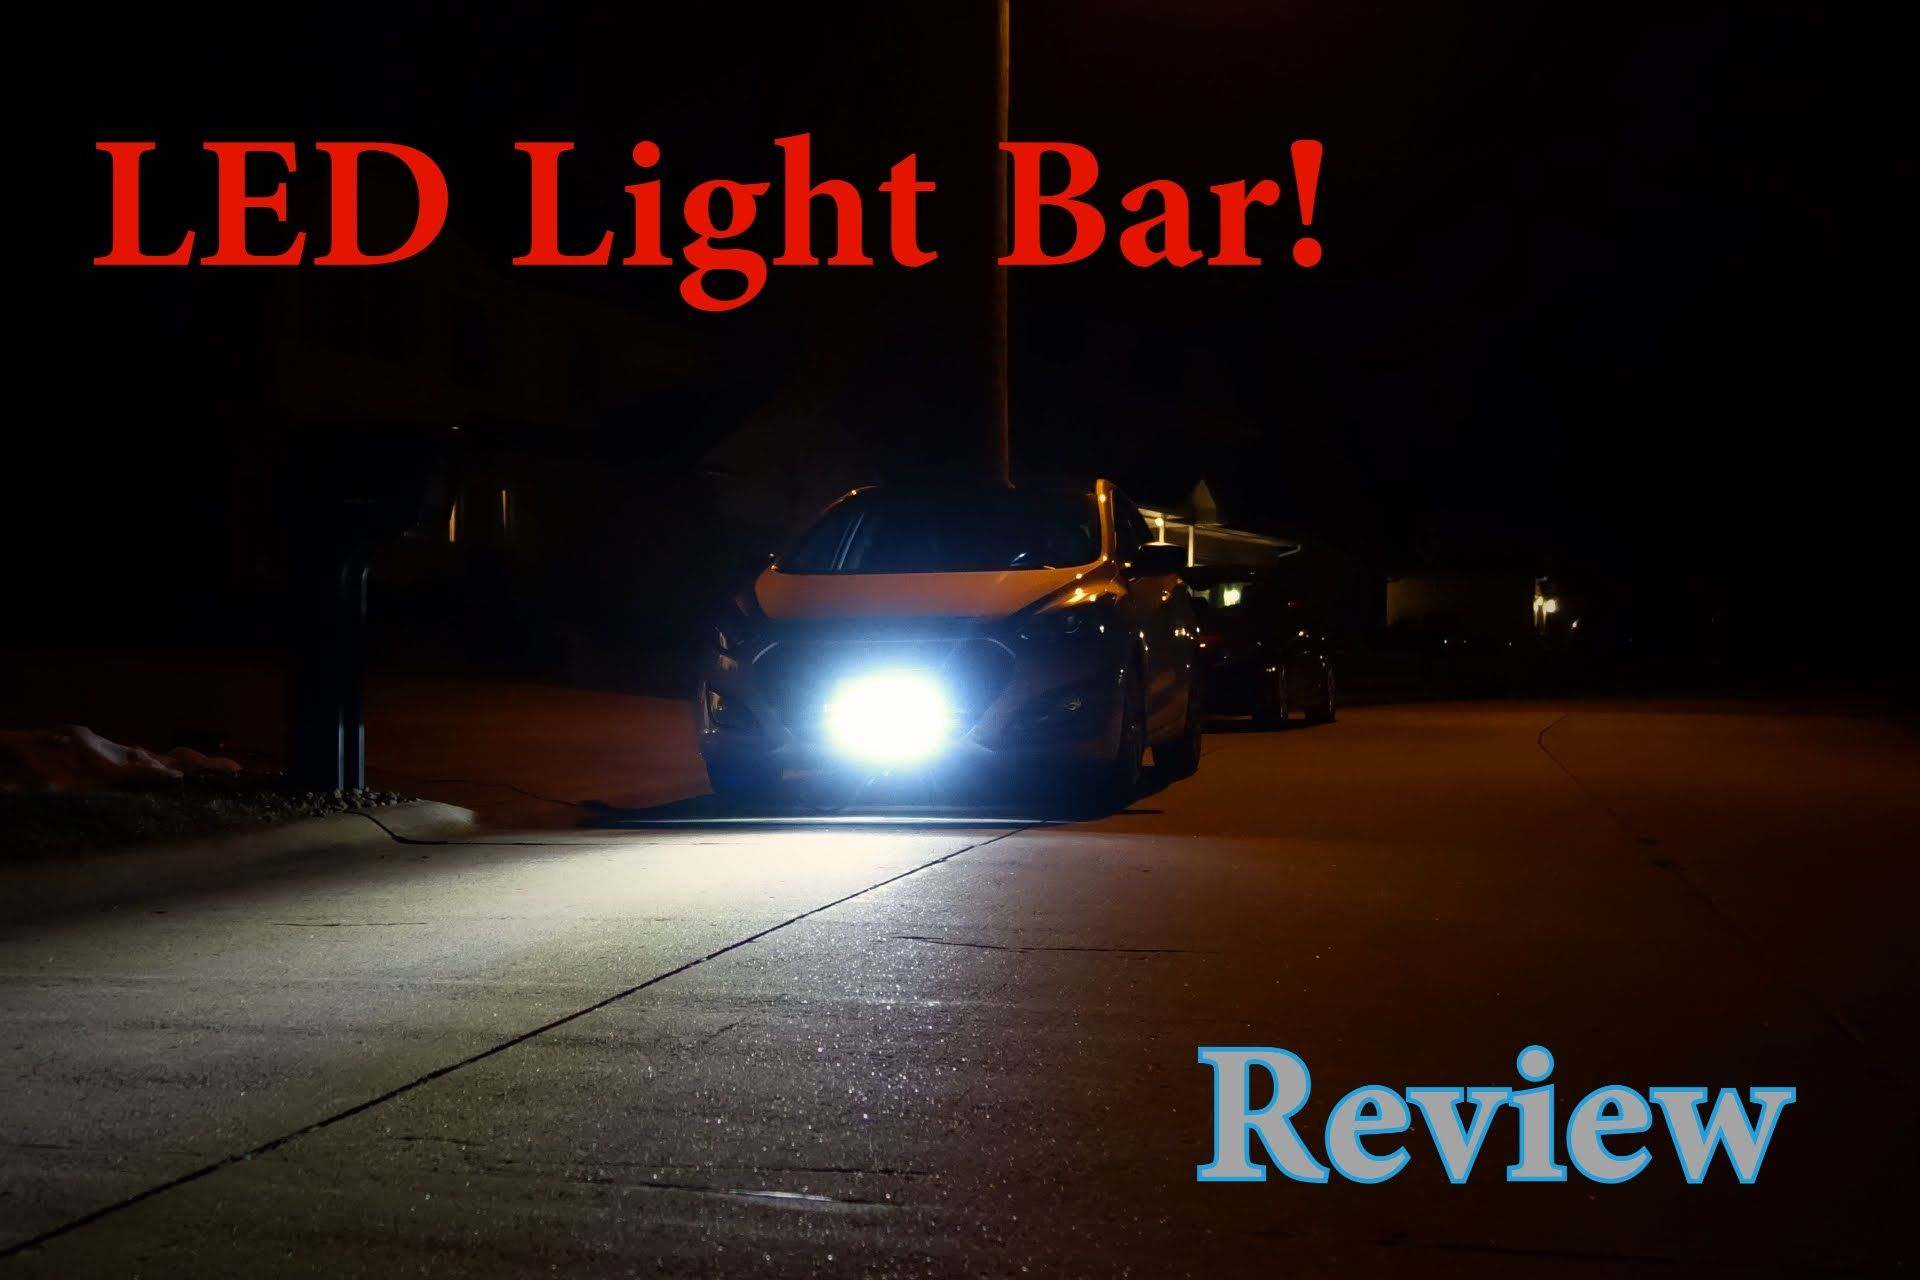 Mictuning 11 led light bar review toyotatacoma offroad mictuning 11 led light bar review toyotatacoma offroad offroadlife offroading aloadofball Gallery